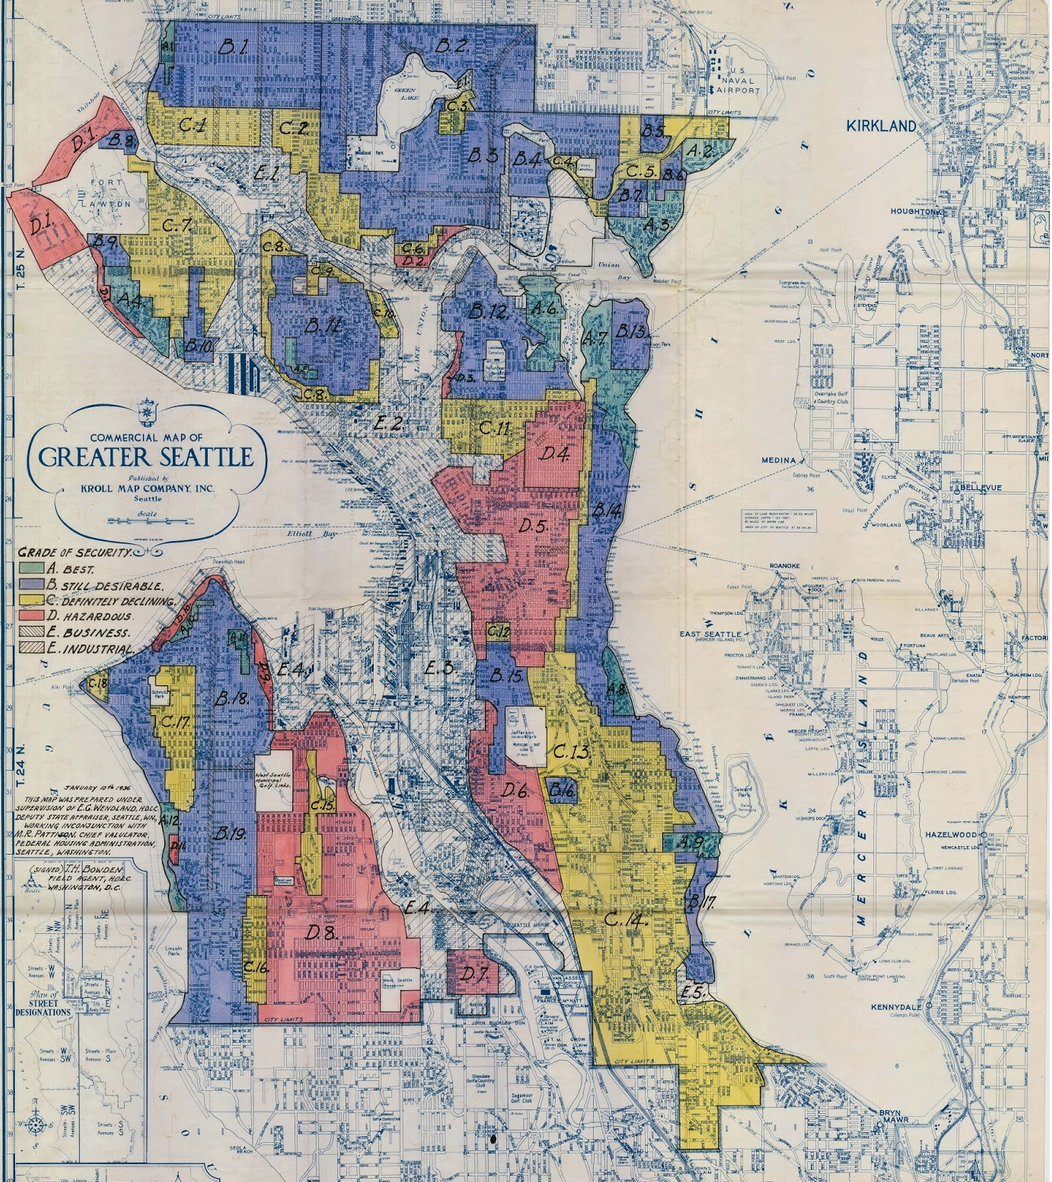 Seattles single family neighborhoods have roots in segregation